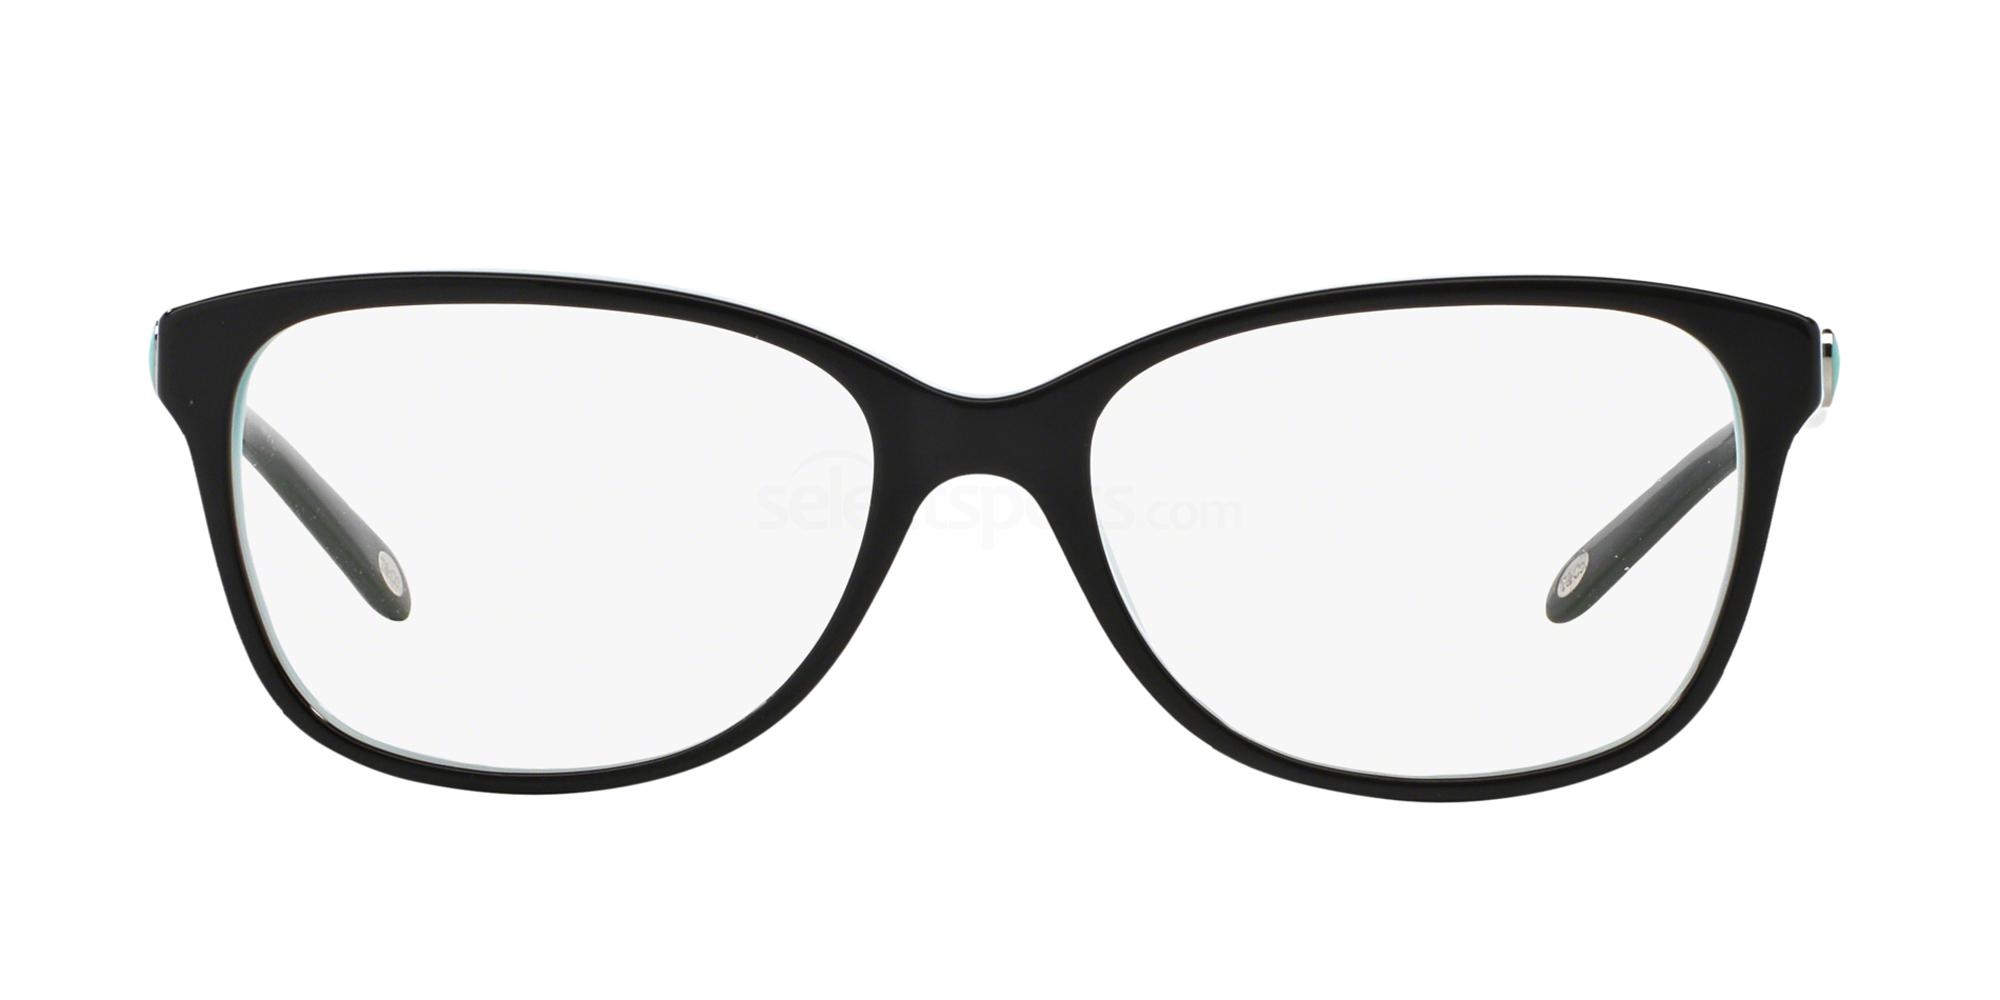 c418c05a7c86 Tiffany   Co. TF2097 glasses. Free lenses   delivery